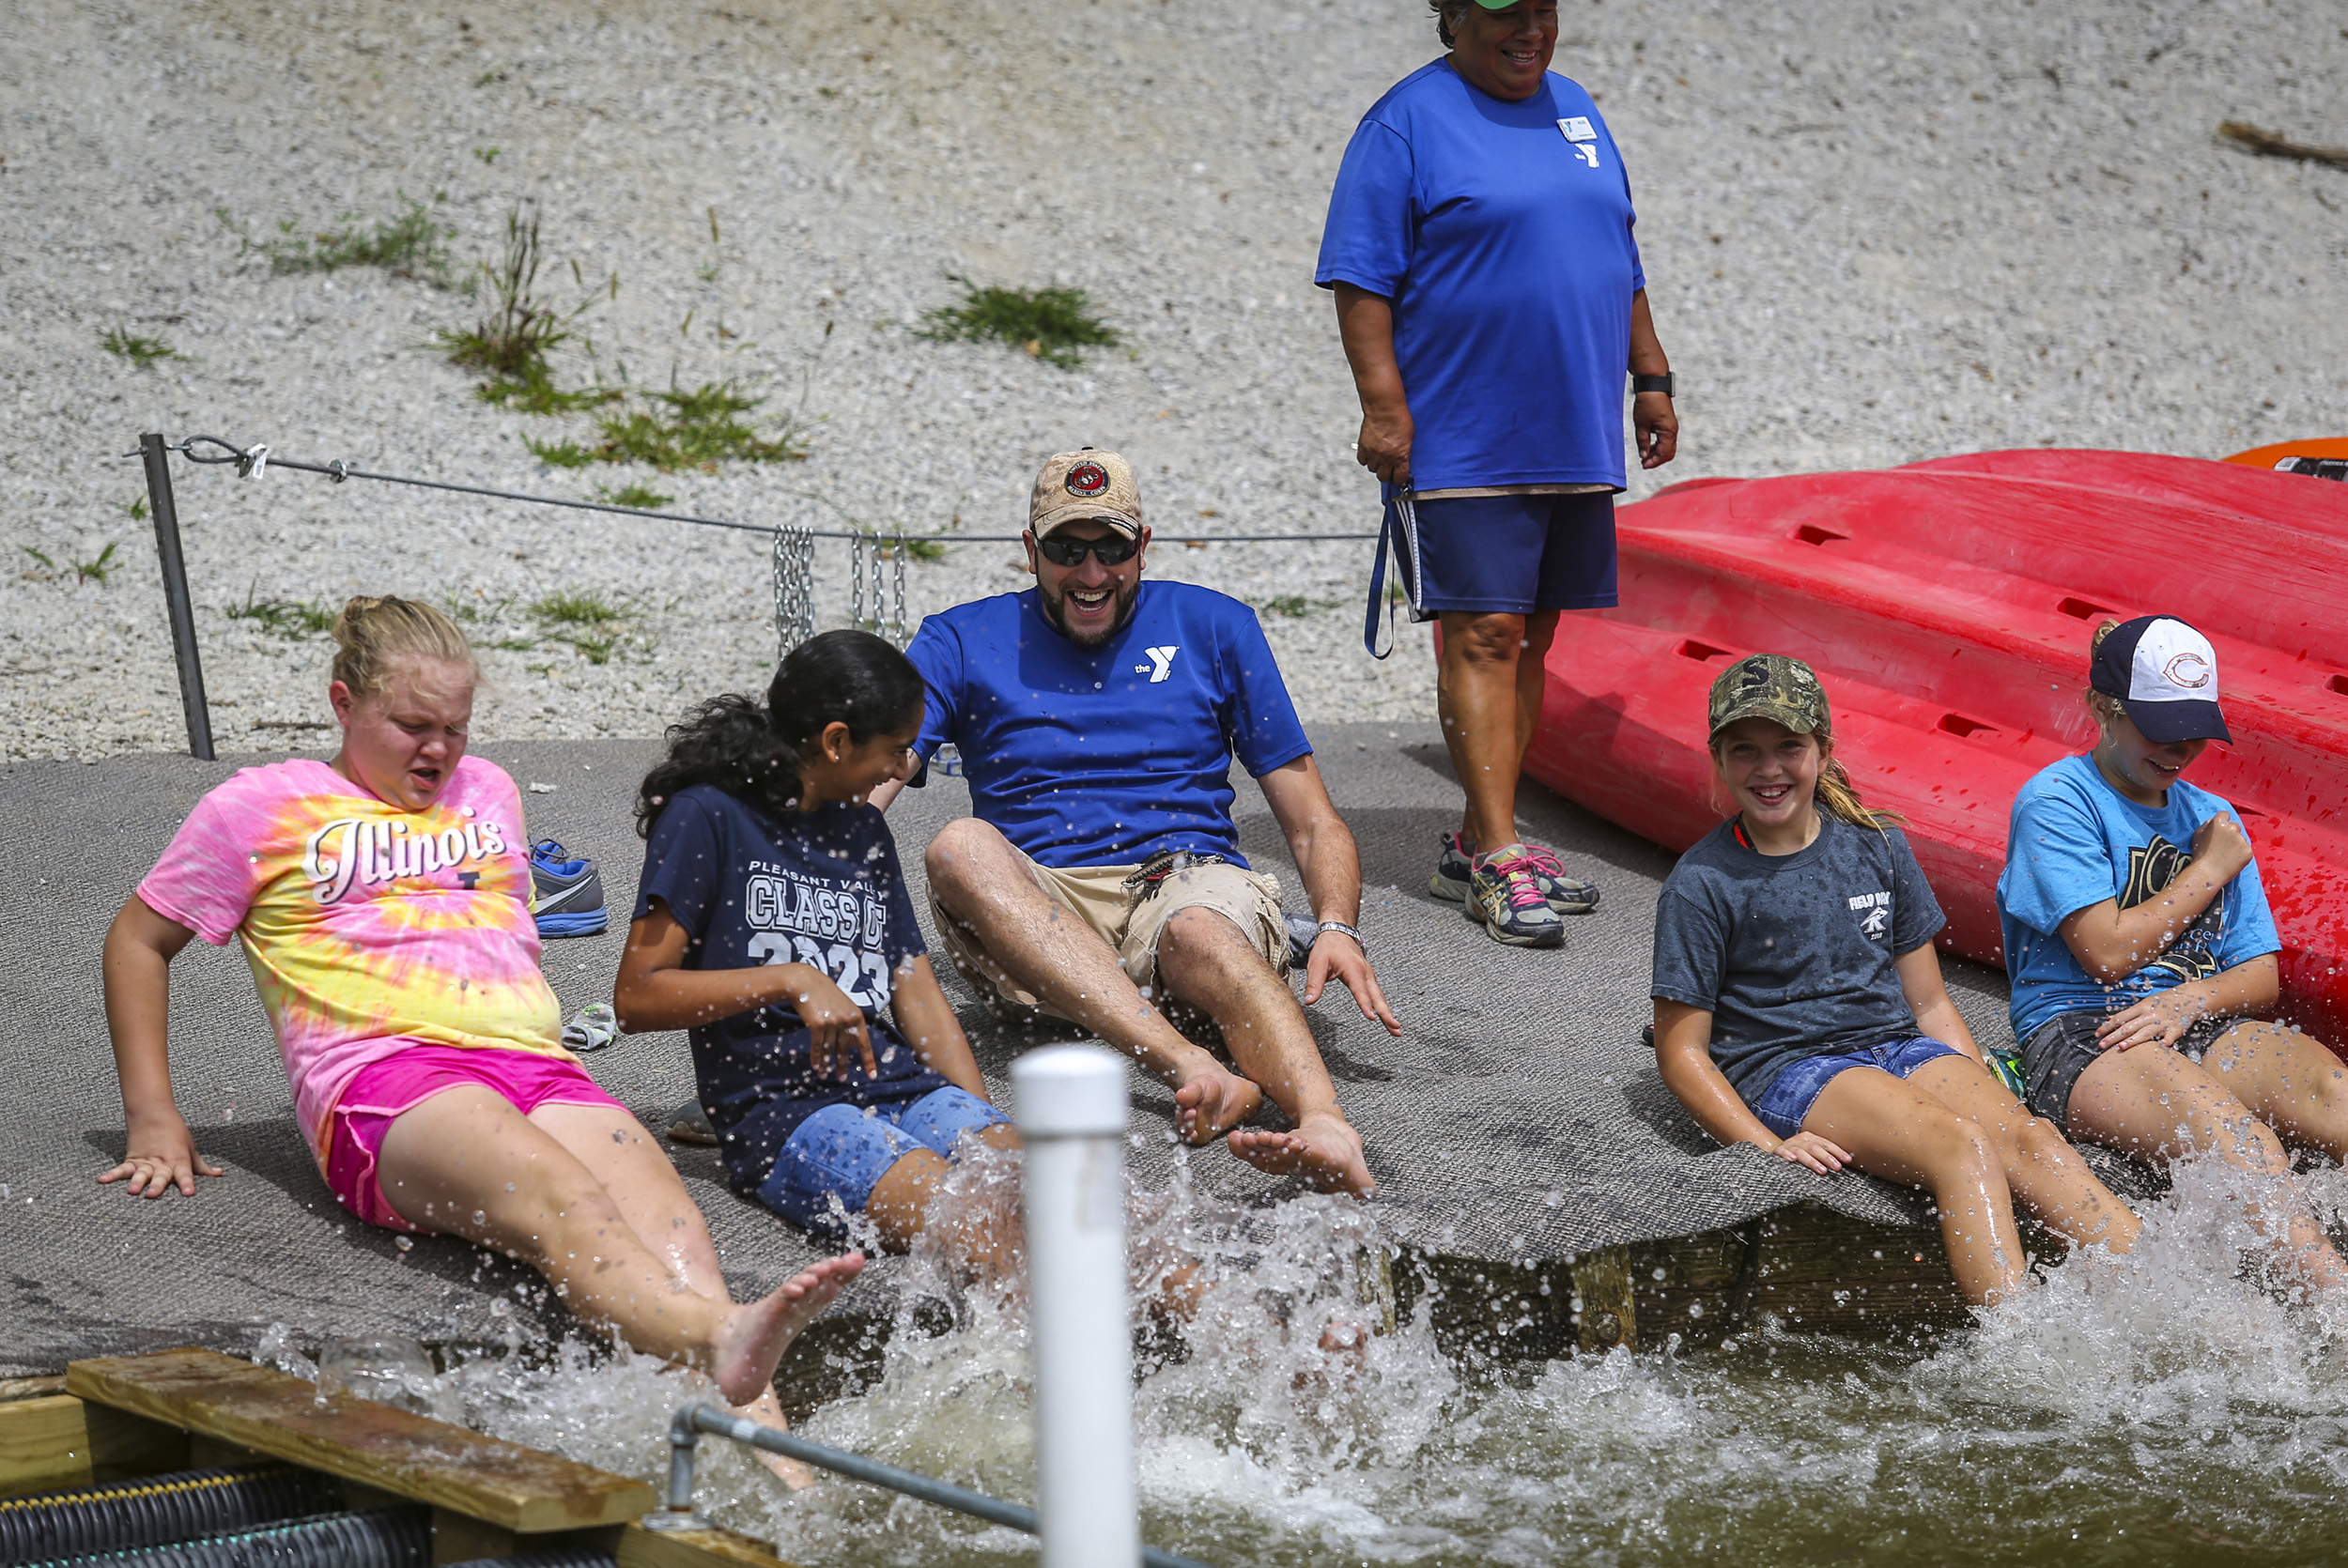 YMCA campers Haley Hotchkiss, 12, left, Julianne Binto, 11, Kylee White, 12, and Lilly Elliot, 12, try to kick and splash water on Rock Island Program Coordinator Rich Yerington during their lunch break at Lake George in Illinois City, Illinois, Thursday, August 17, 2017.